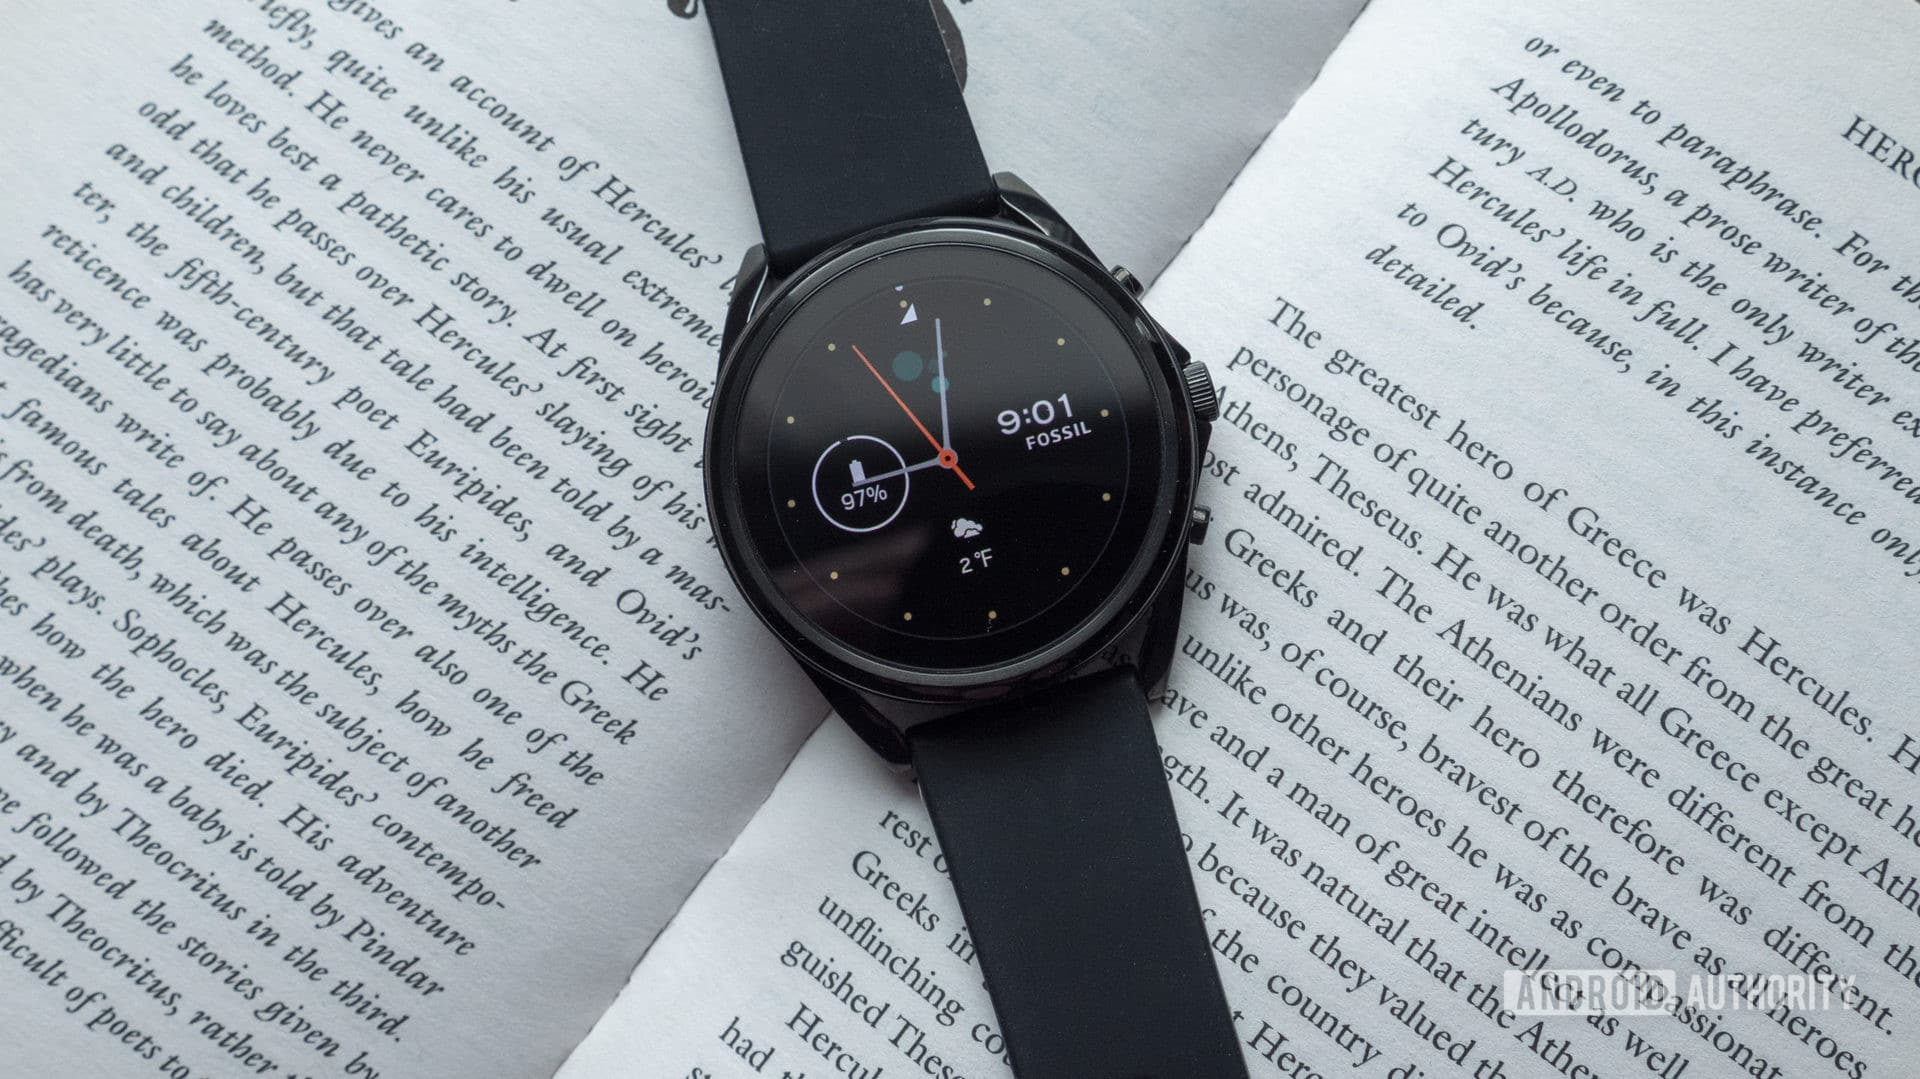 fossil gen 5 lte review watch face display 2